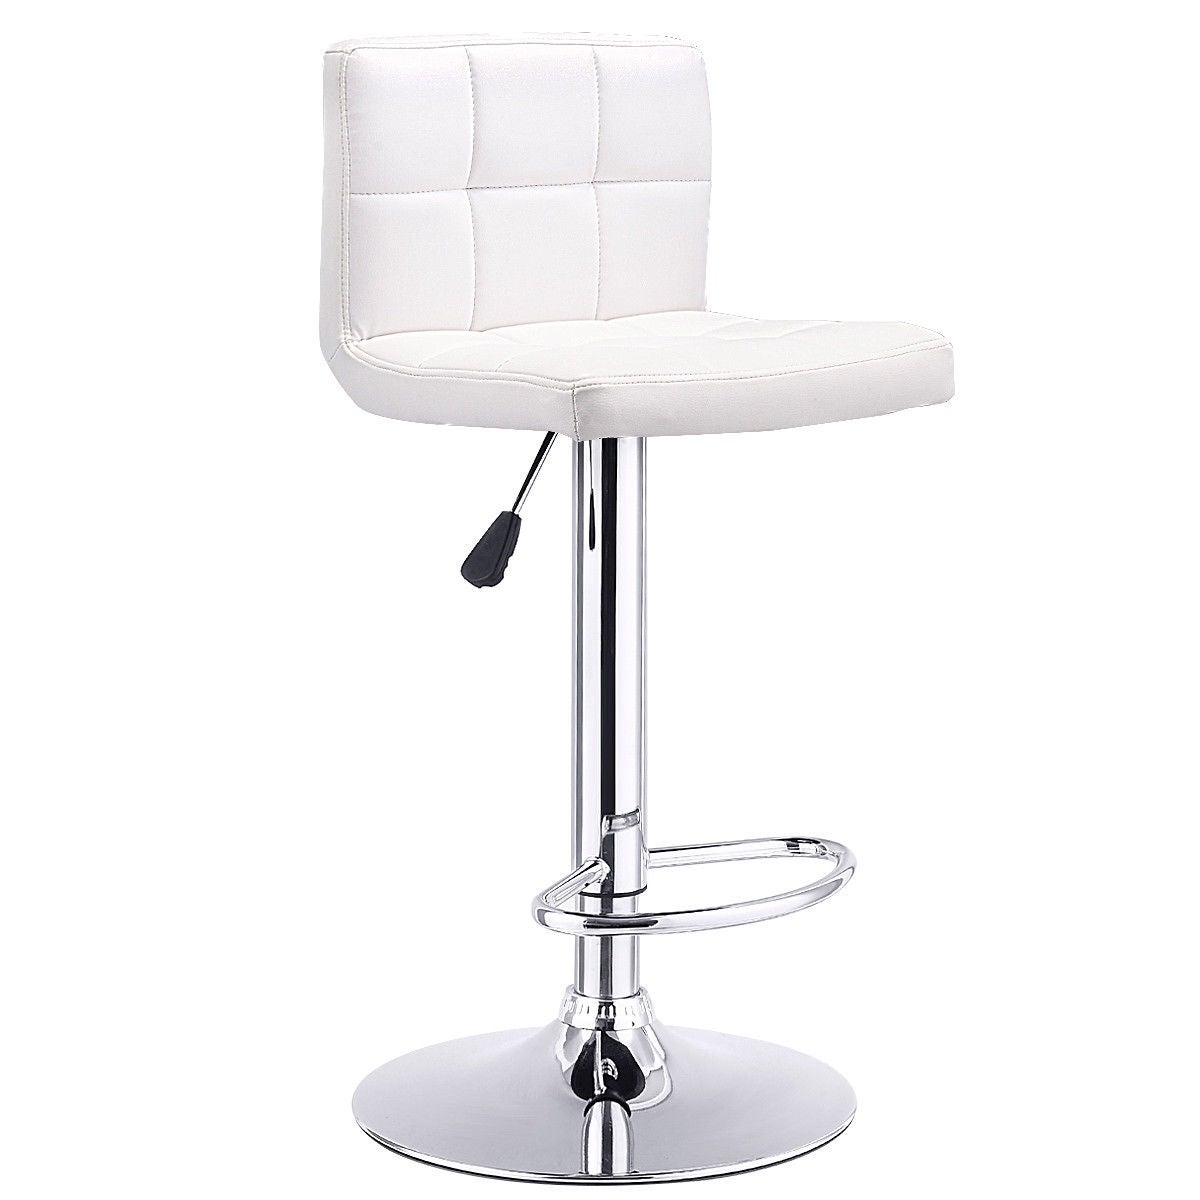 Outstanding Costway 1 Pc Bar Stool Swivel Adjustable Pu Leather Barstools Bistro Pub Chair White Camellatalisay Diy Chair Ideas Camellatalisaycom